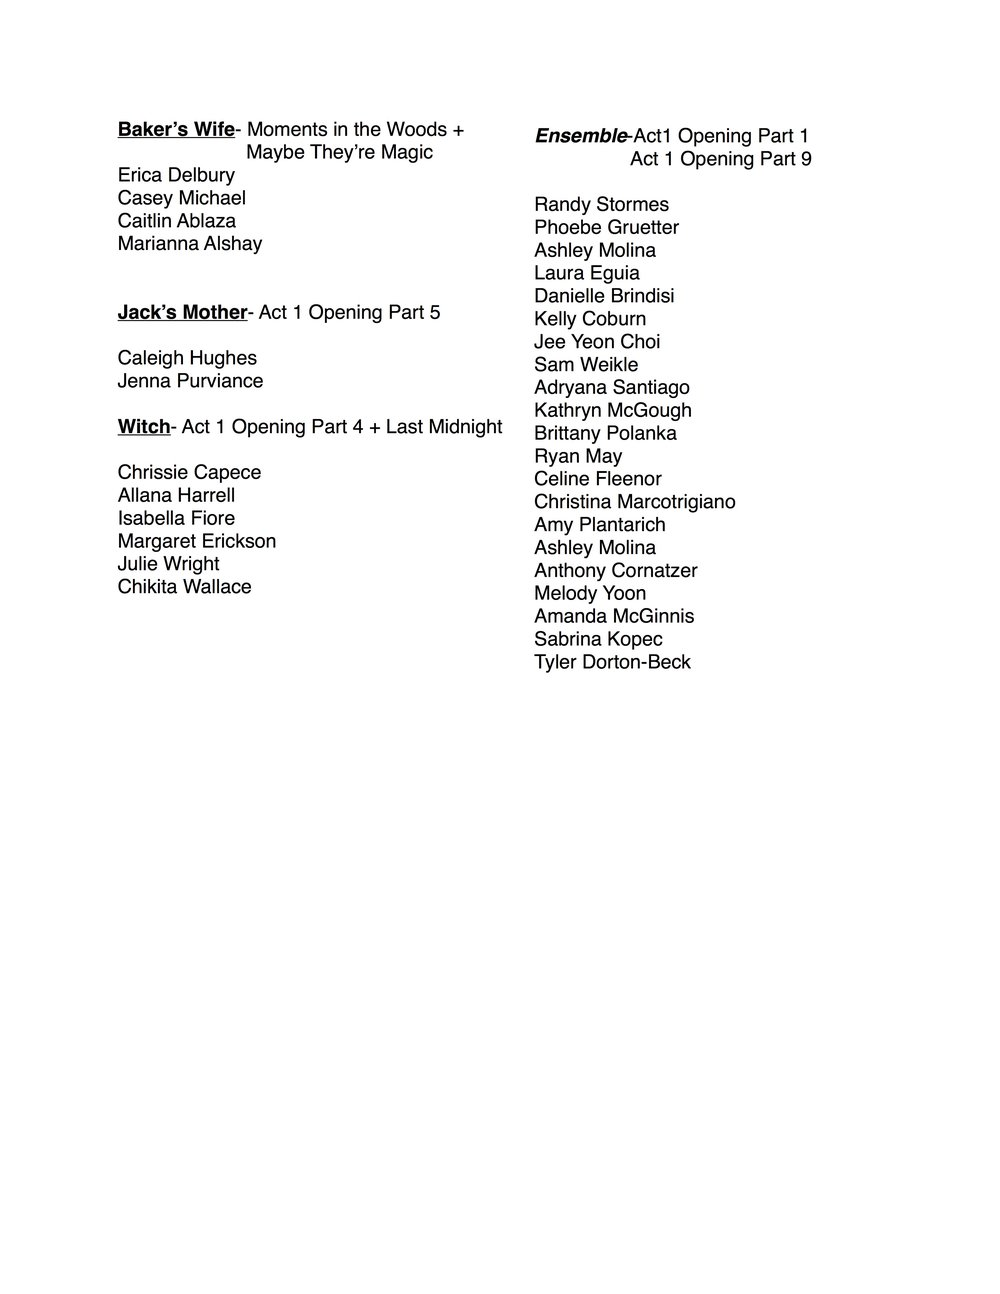 Into the Woods Callbacks names and roles 2.jpg